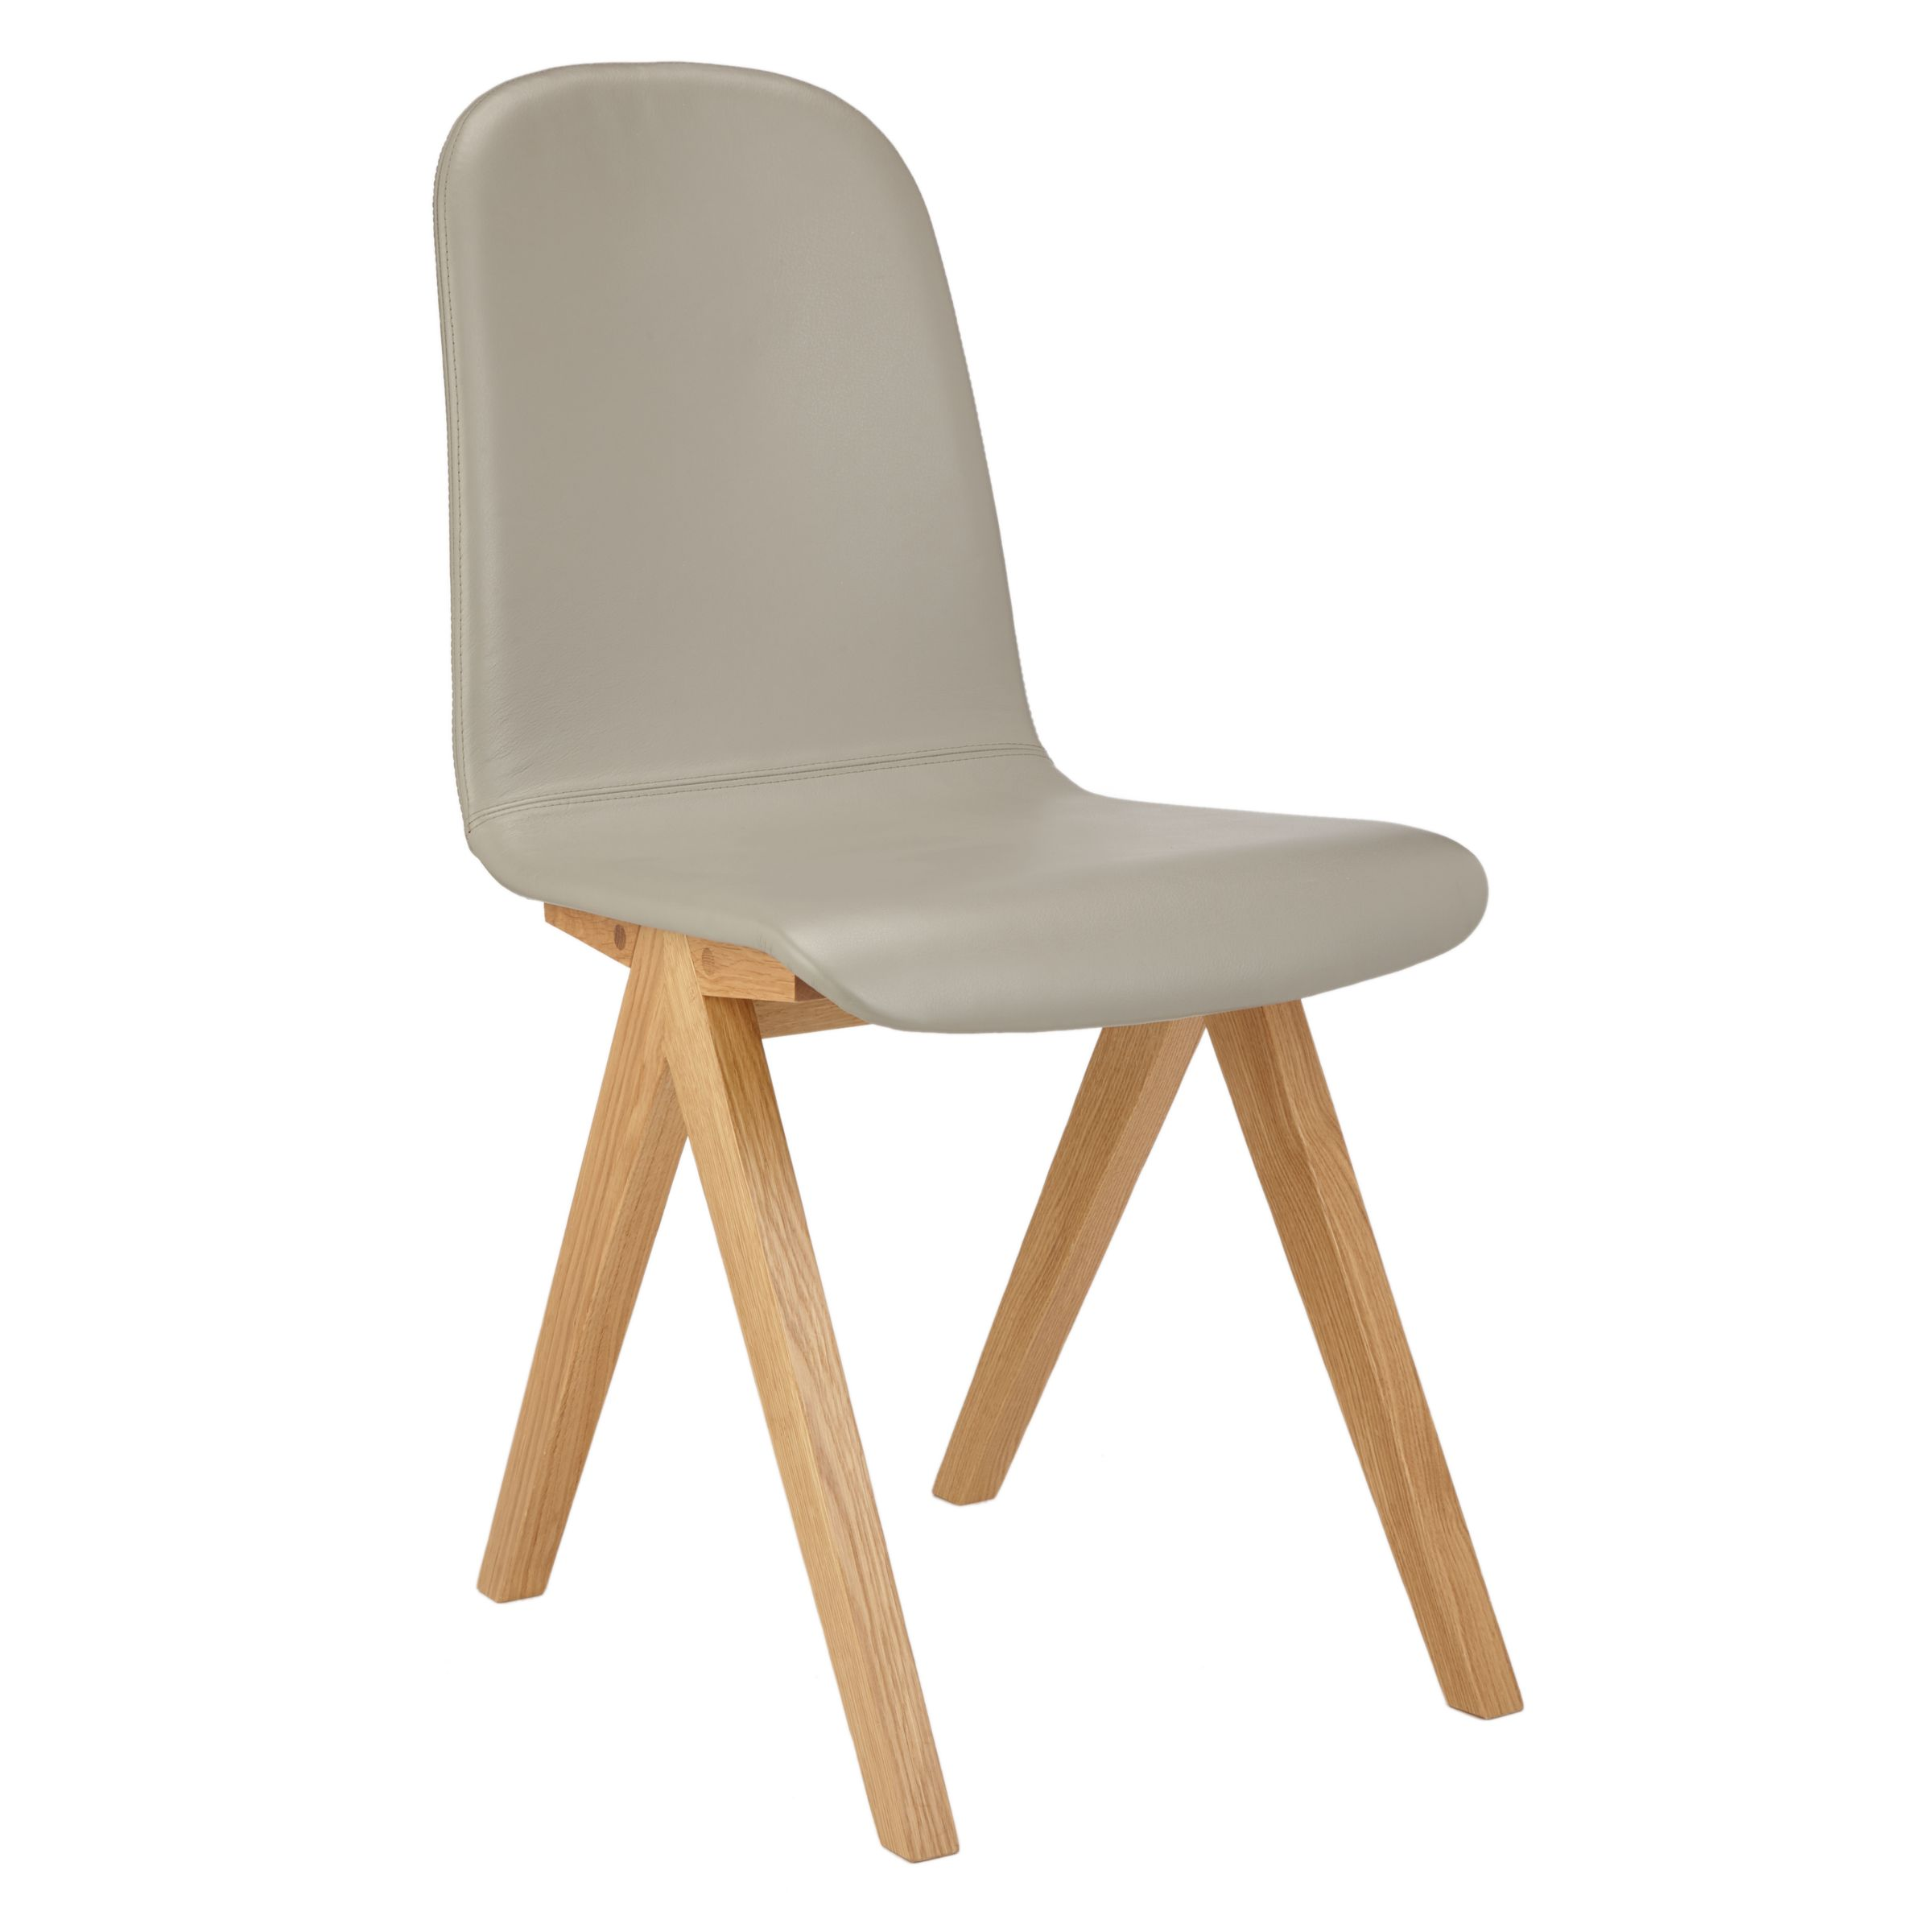 Bethan Gray for John Lewis Bethan Gray for John Lewis Newman Leather Upholstered Dining Chair, FSC-Certified